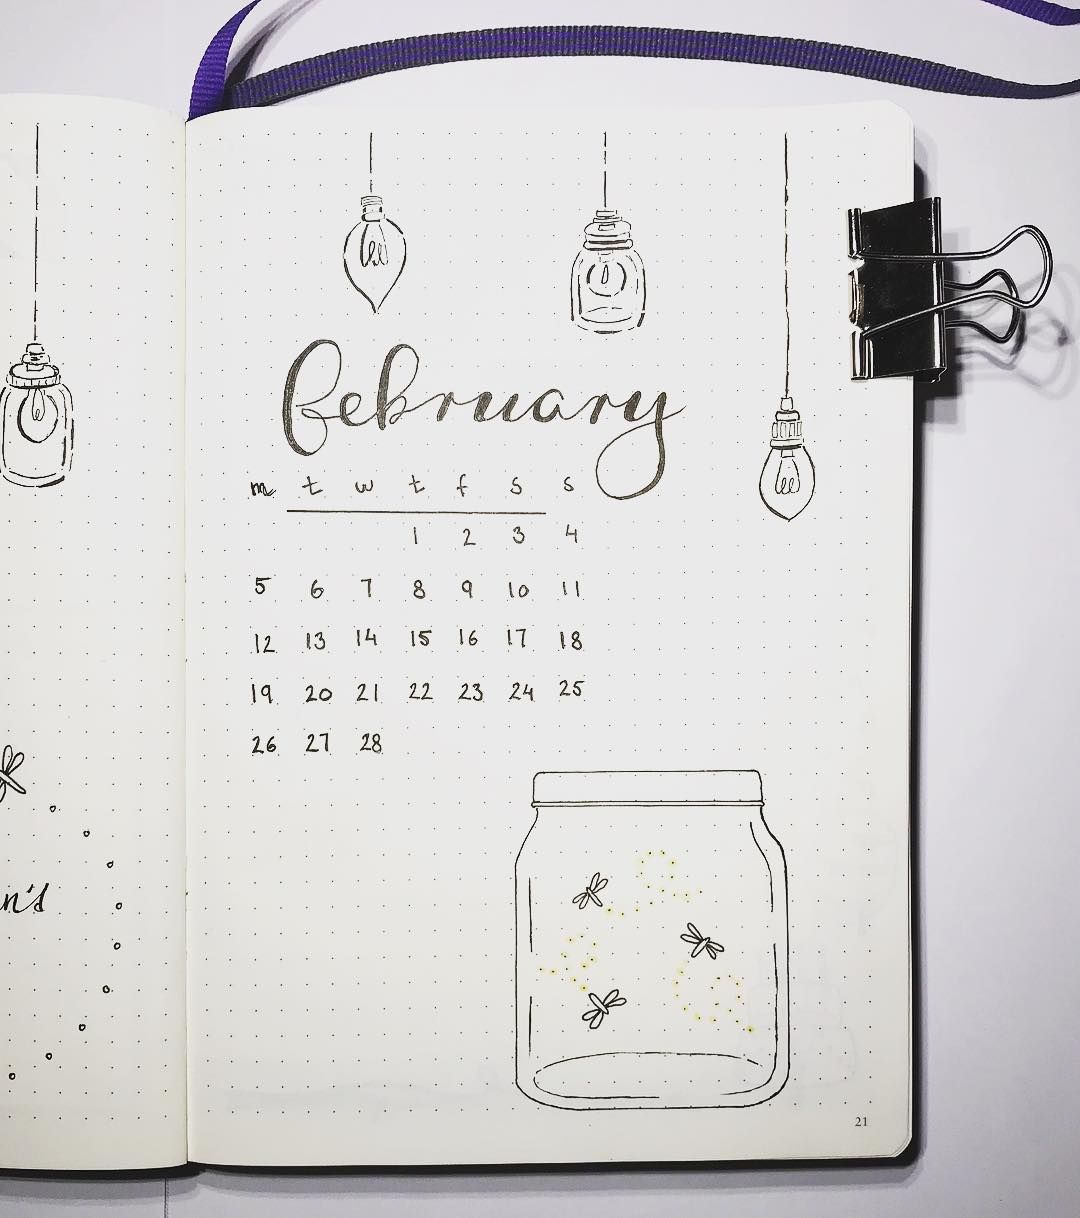 bullet journal monthly cover page february cover page fireflies in a jar drawing lightbulb drawings nordic notes [ 1080 x 1218 Pixel ]